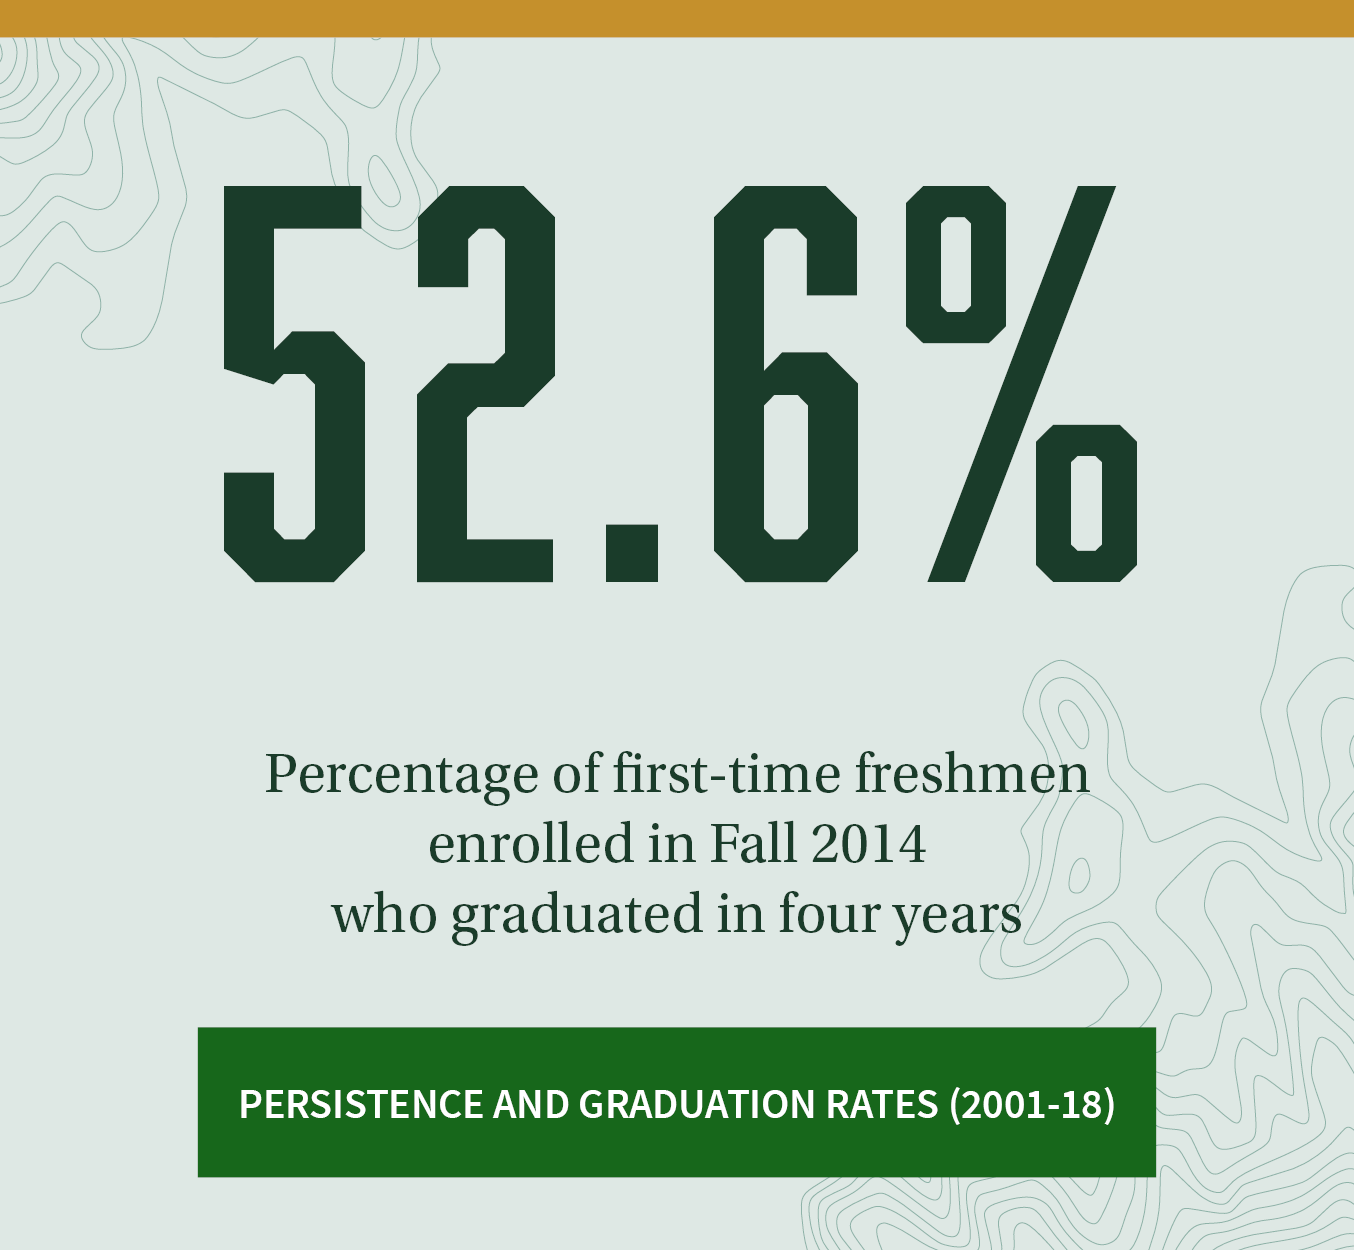 52.6%. Percentage of first-time freshmen from Fall 2014 who graduated in four years. Click to see persistence and graduation rates (2001-18).